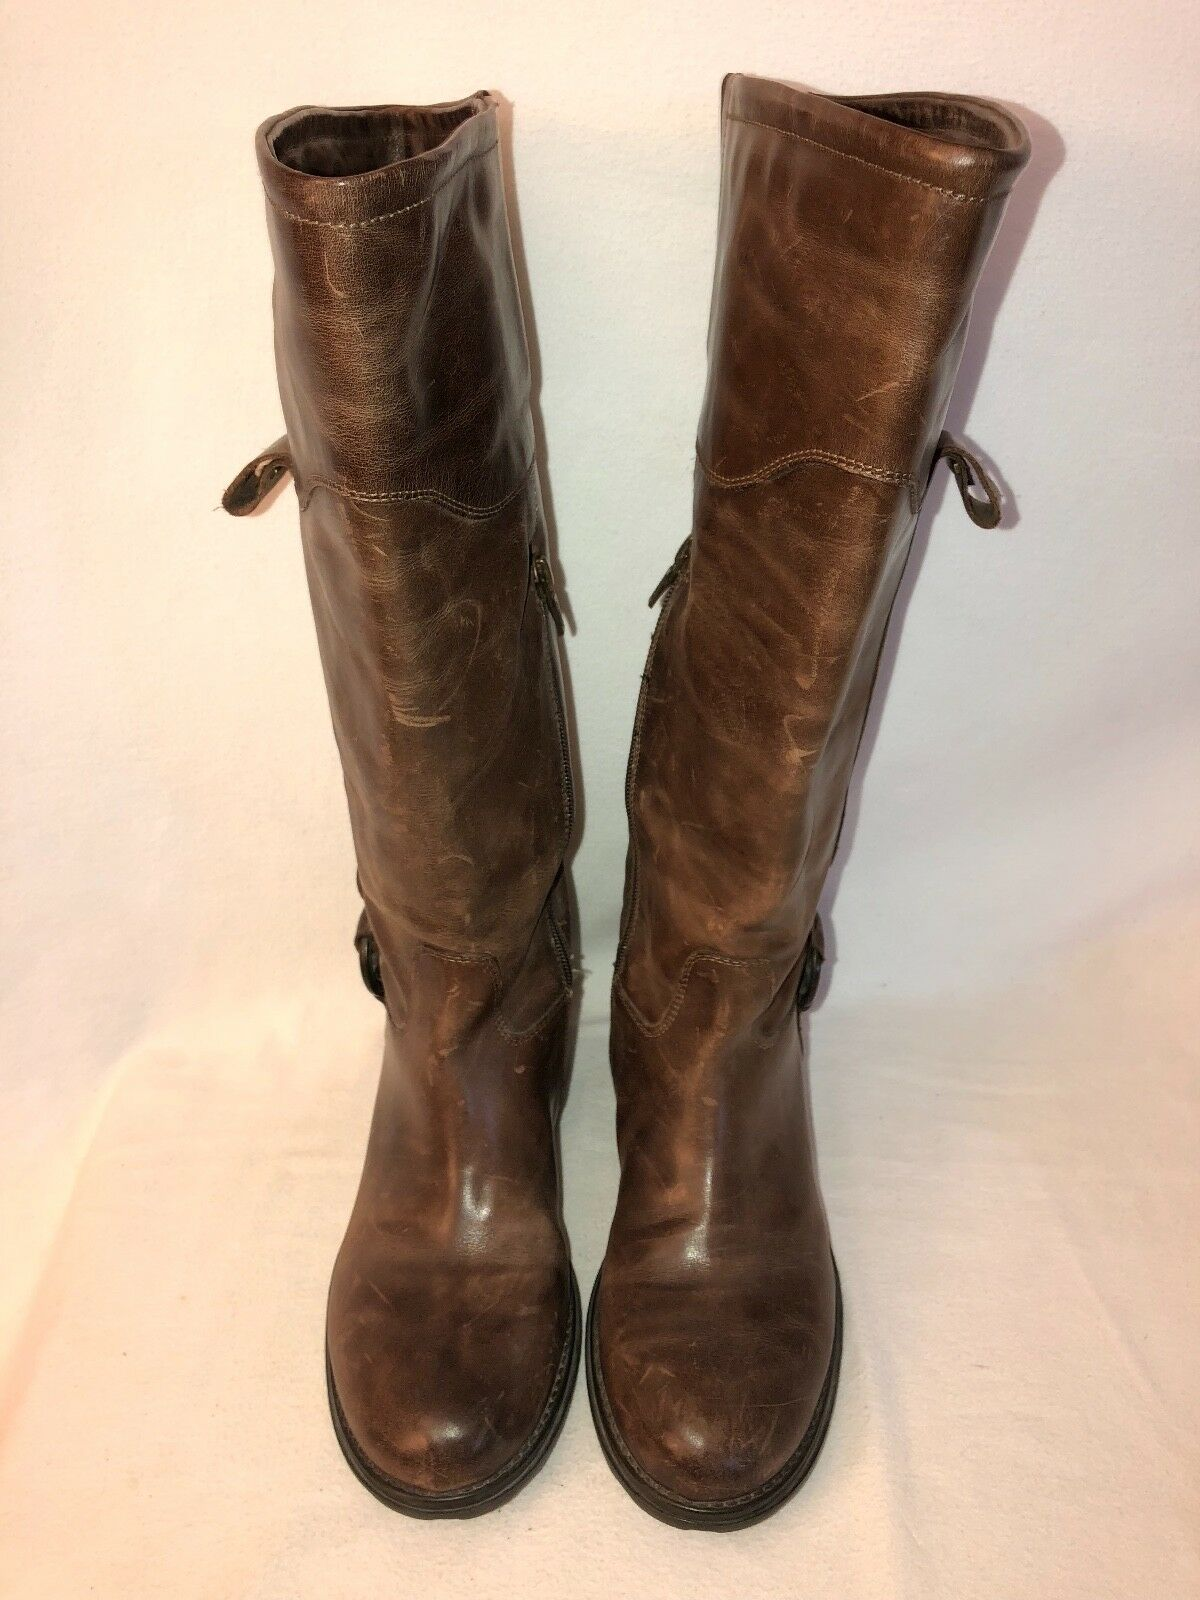 GEOX Ortisei ABX D1348A D1348A ABX Damenschuhe 39 US 9 Oiled Leder Riding Boot Lug Sole Coffee 99c6db